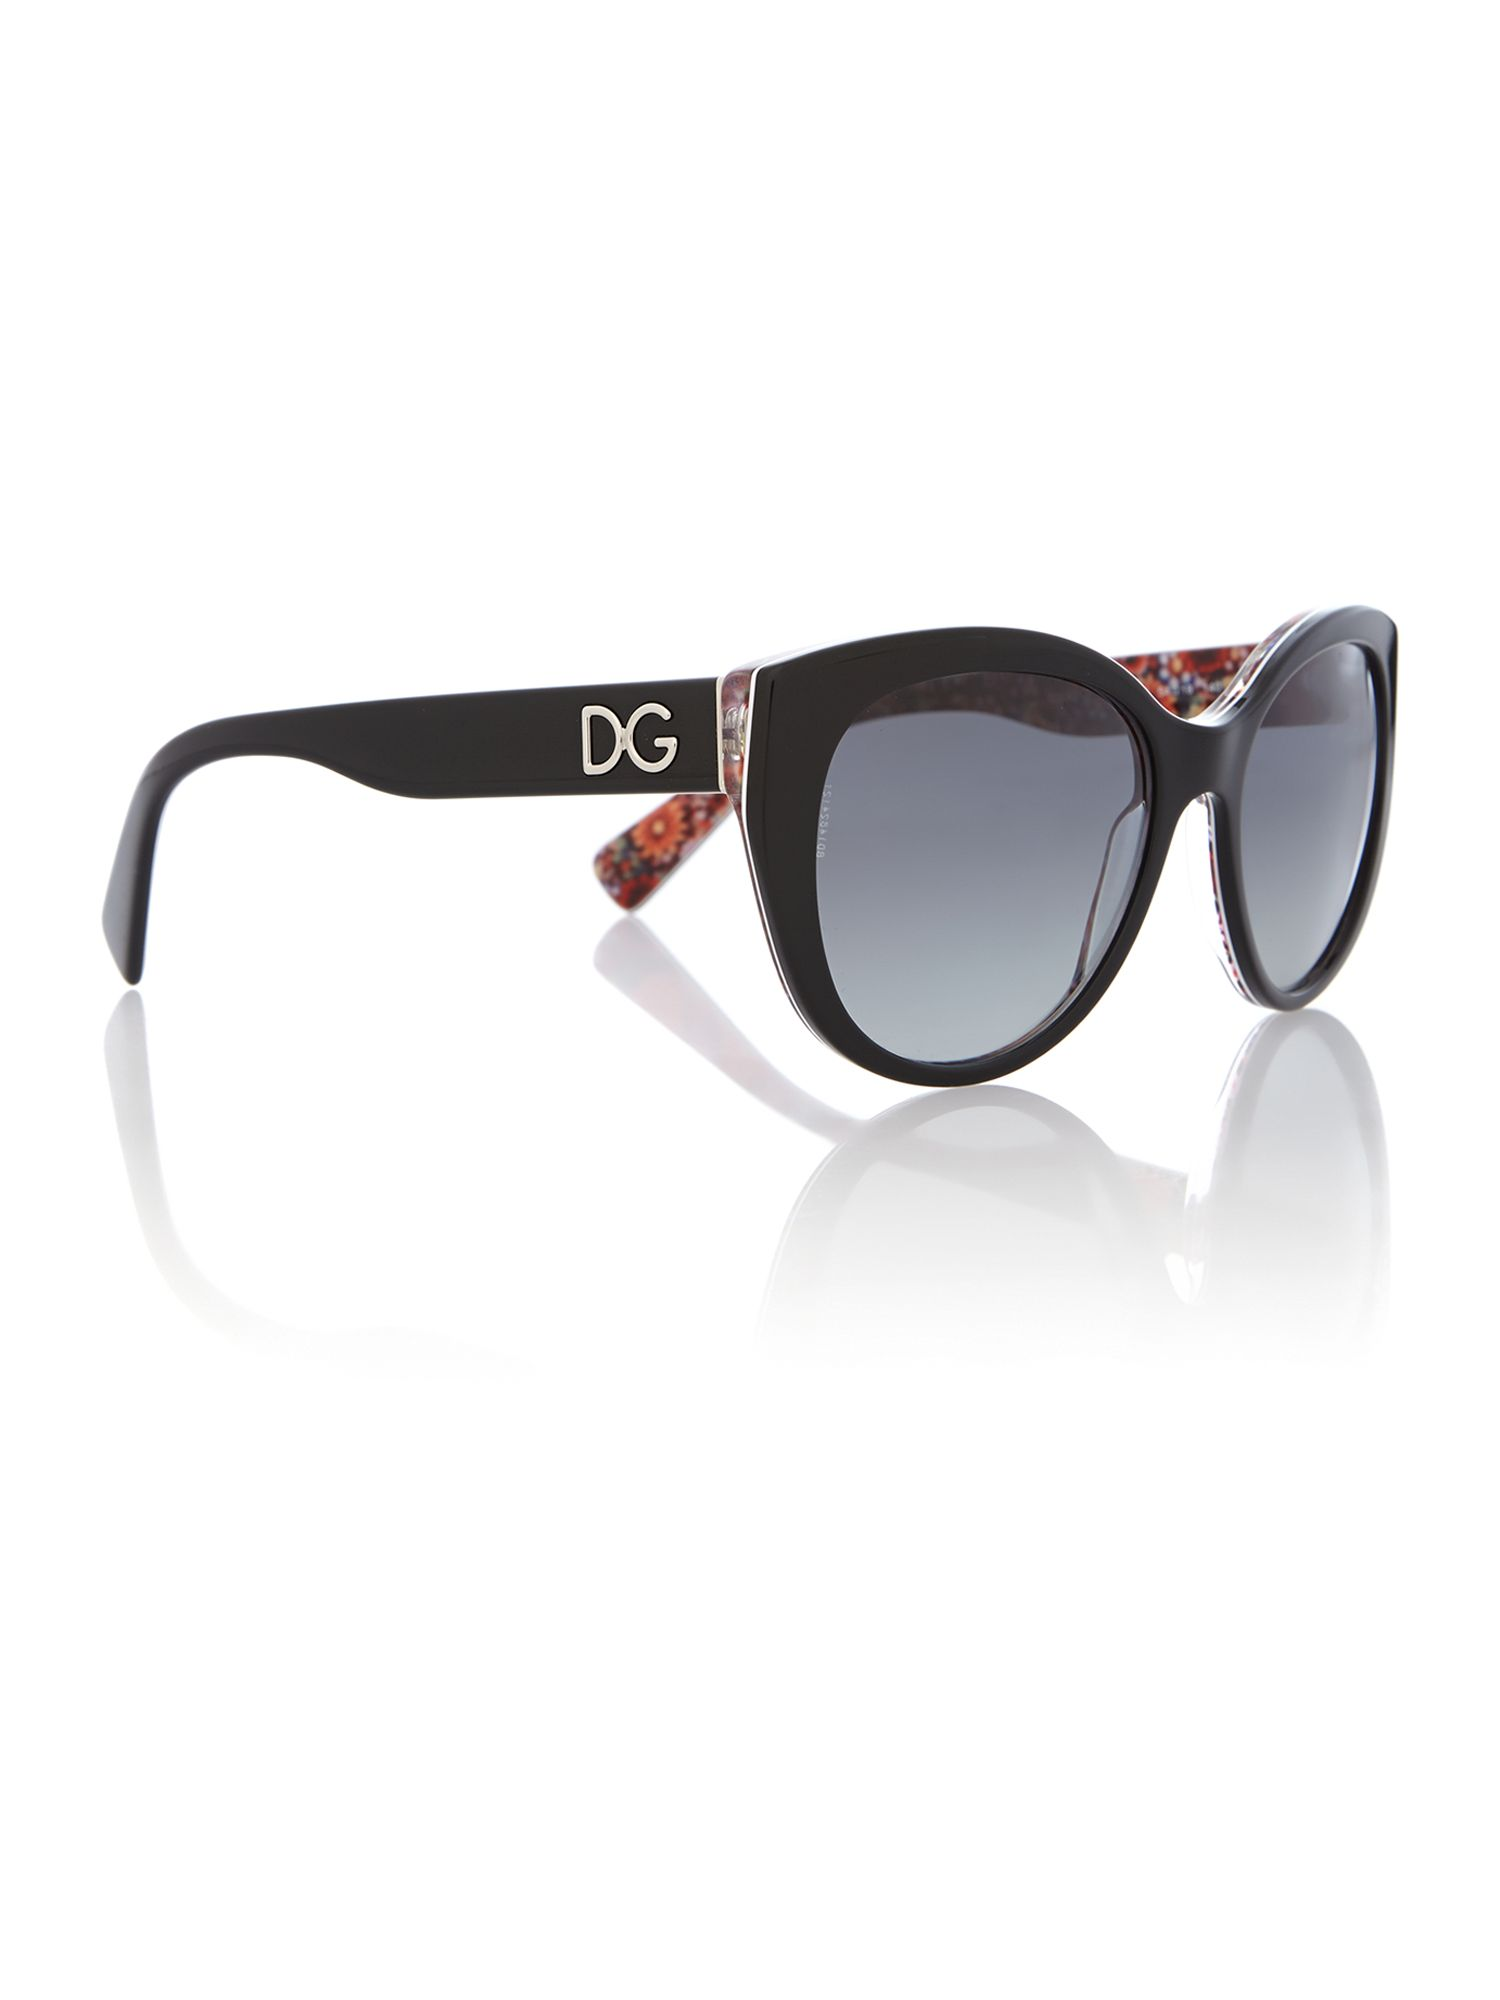 Dg4217 ladies round sunglasses